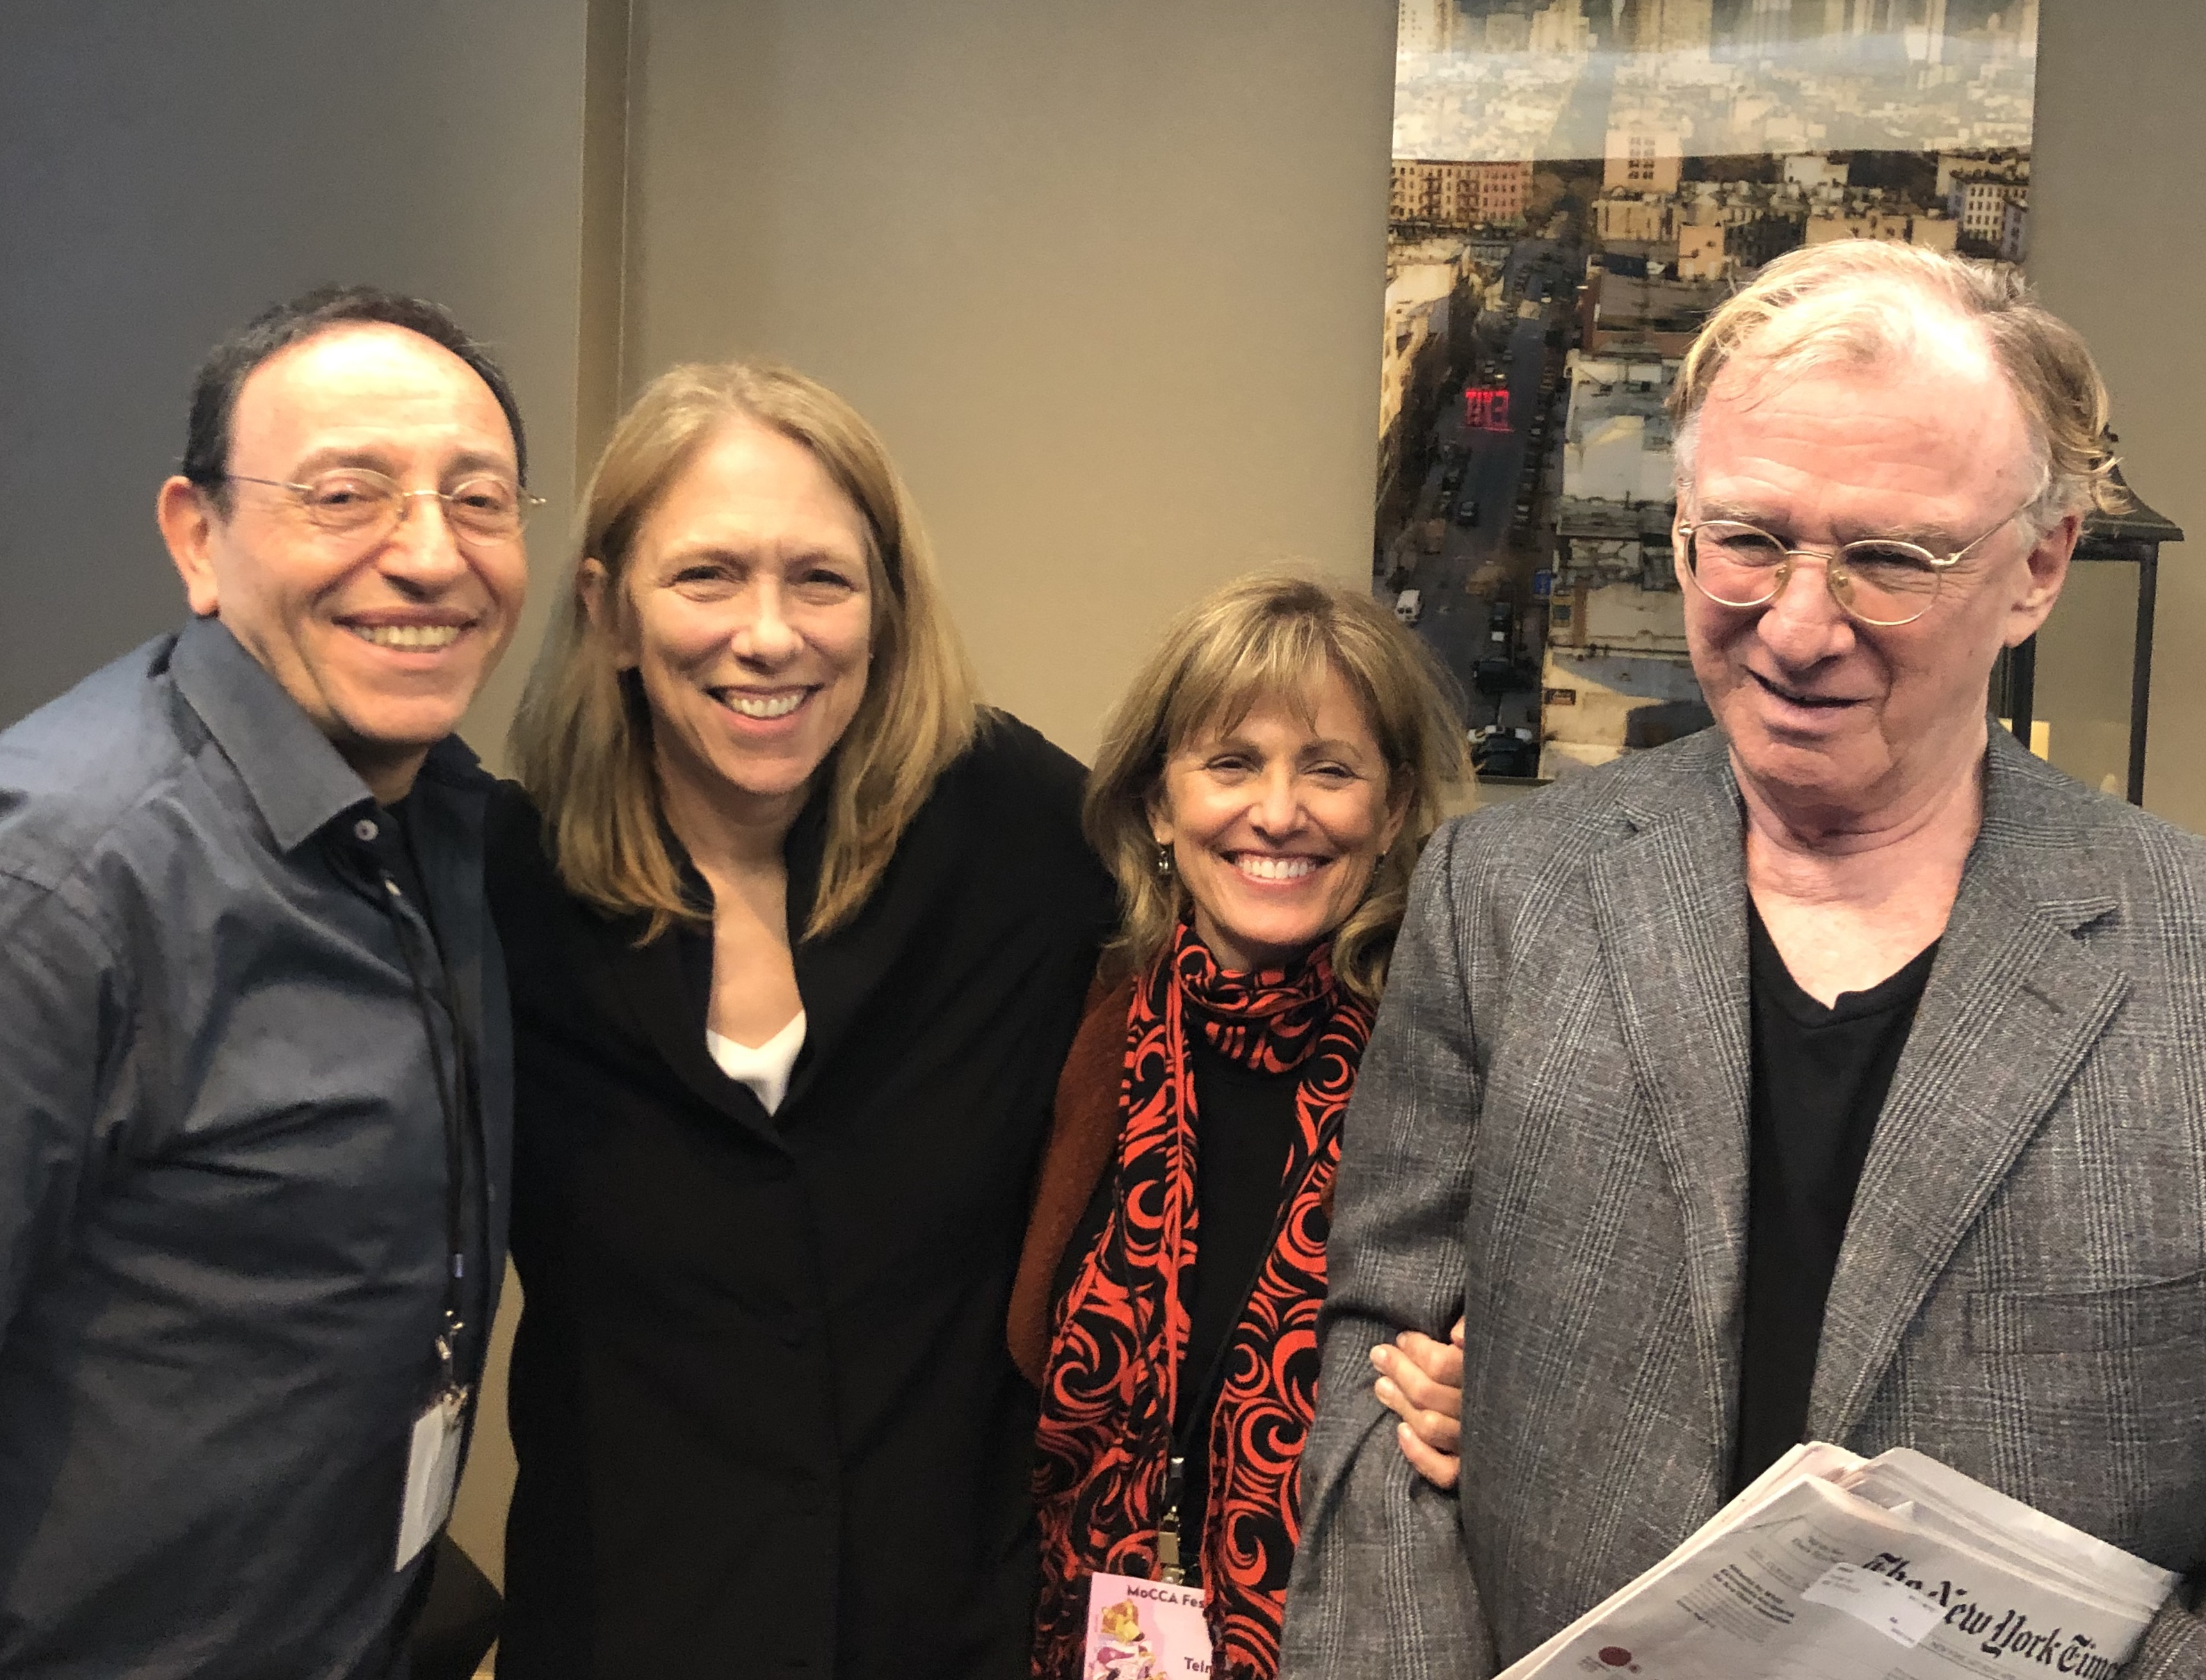 Michel Kichka (Israel), Liza Donnelly (United States), Ann Telnaes (United States) & Jeff Danziger (United States)